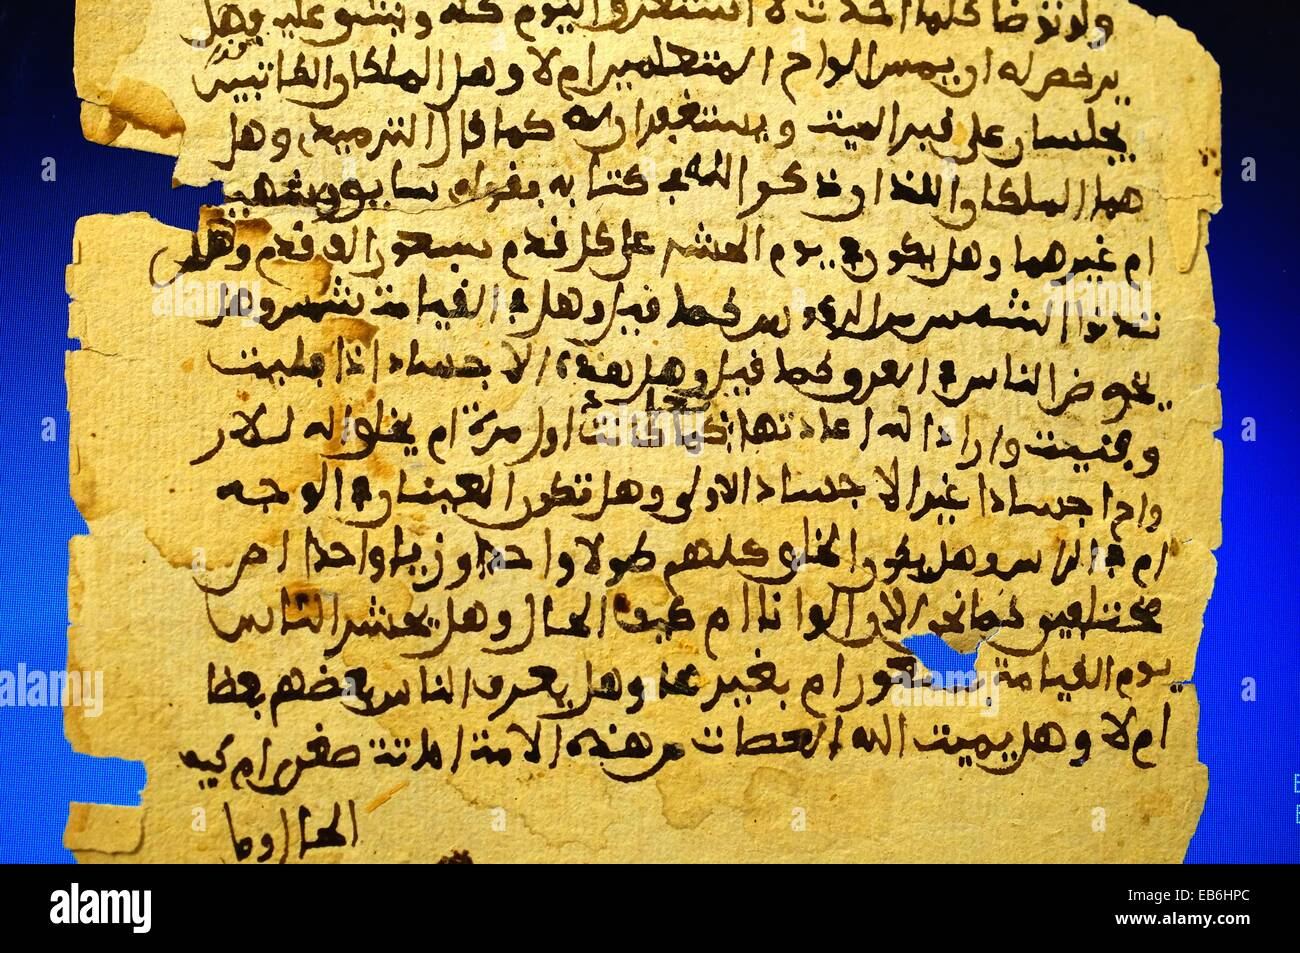 Hand written page about religion, 19th century, Islam, Morocco - Stock Image